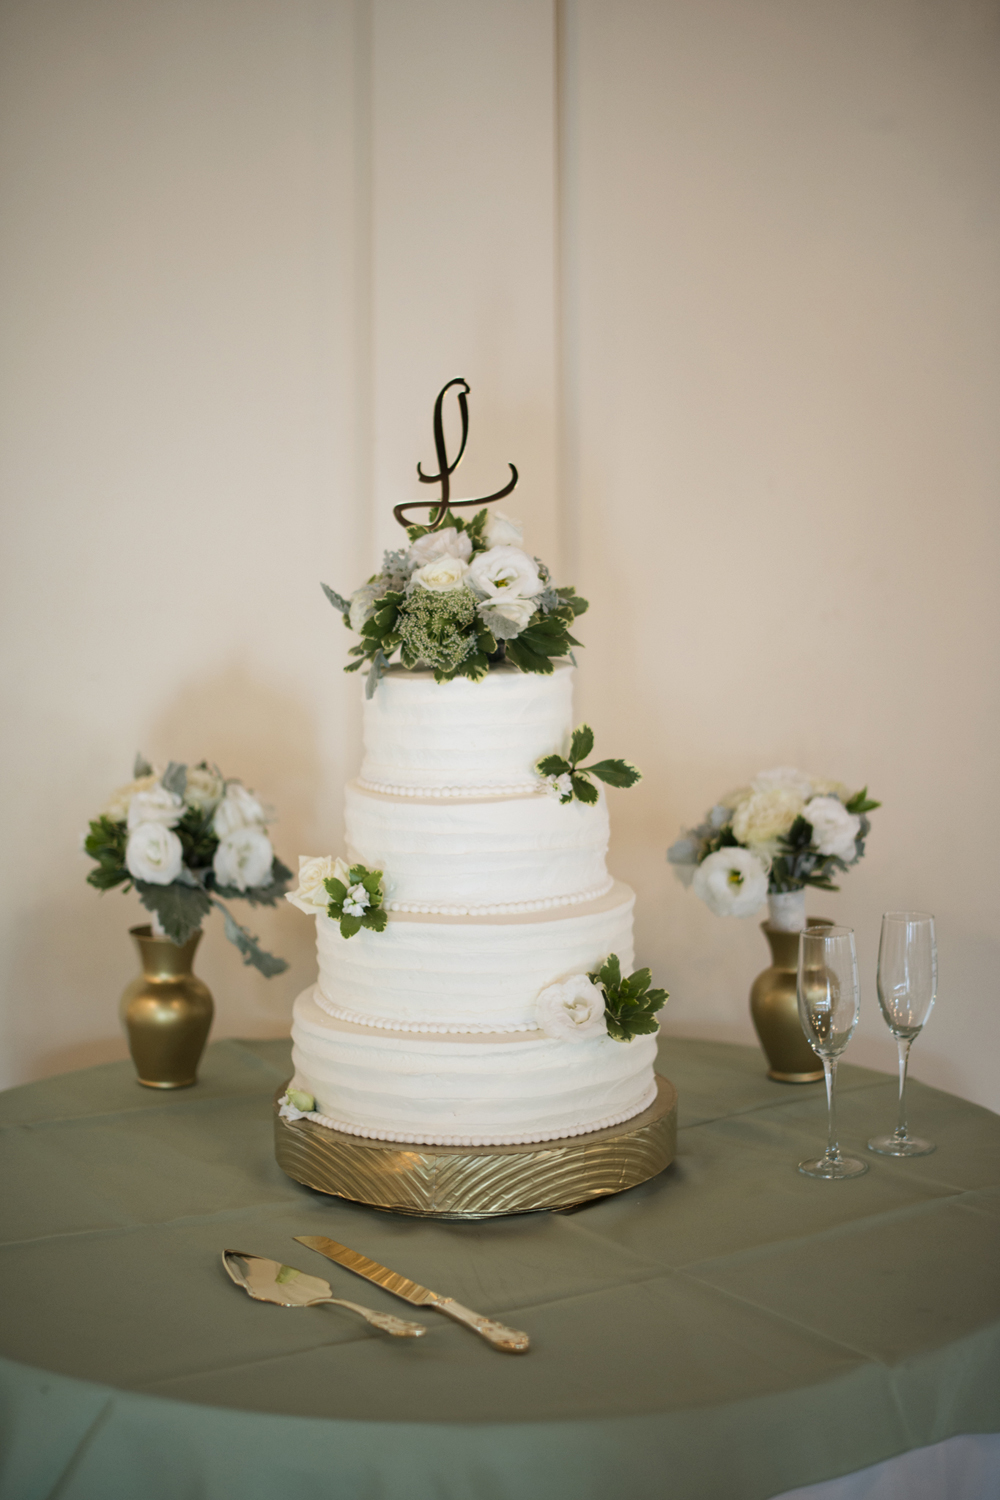 Mint green and white wedding cake with gold cake stand  | Portsmouth Woman's Club in Virginia